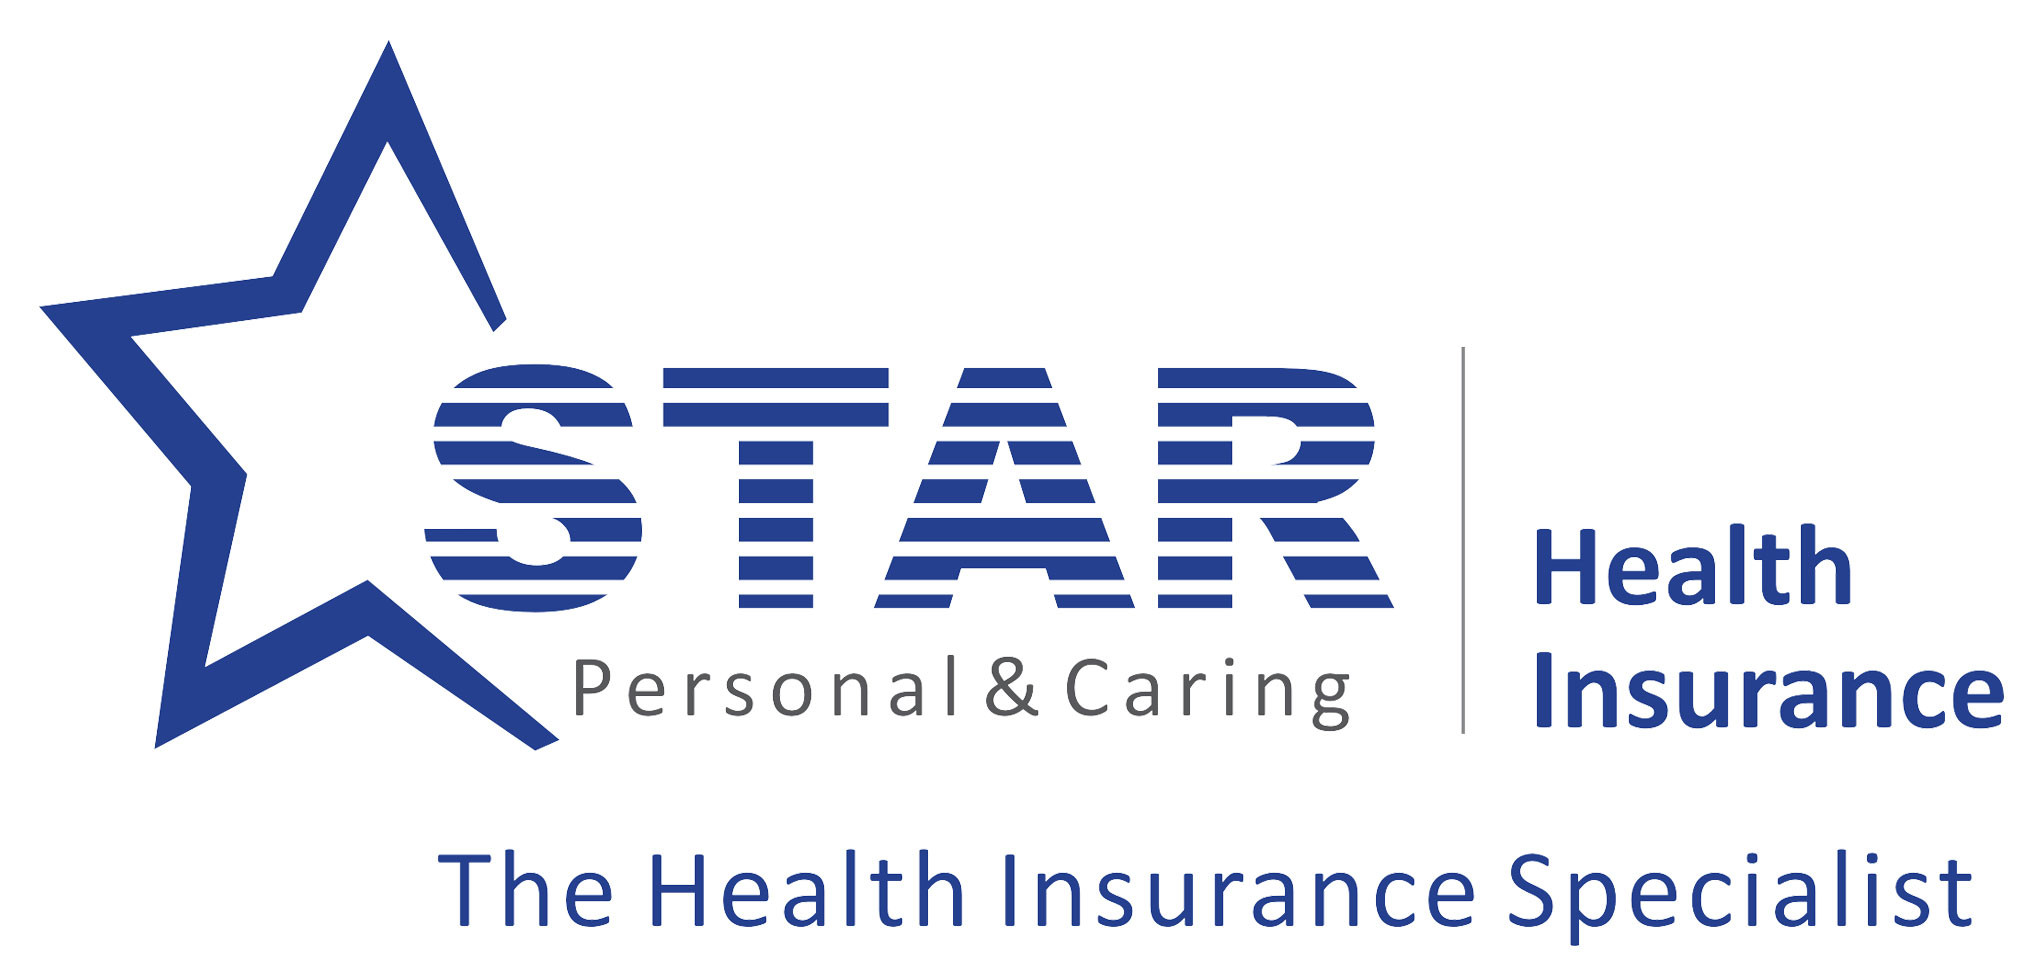 Star Health Medi-classic Insurance Policy (Individual) Image